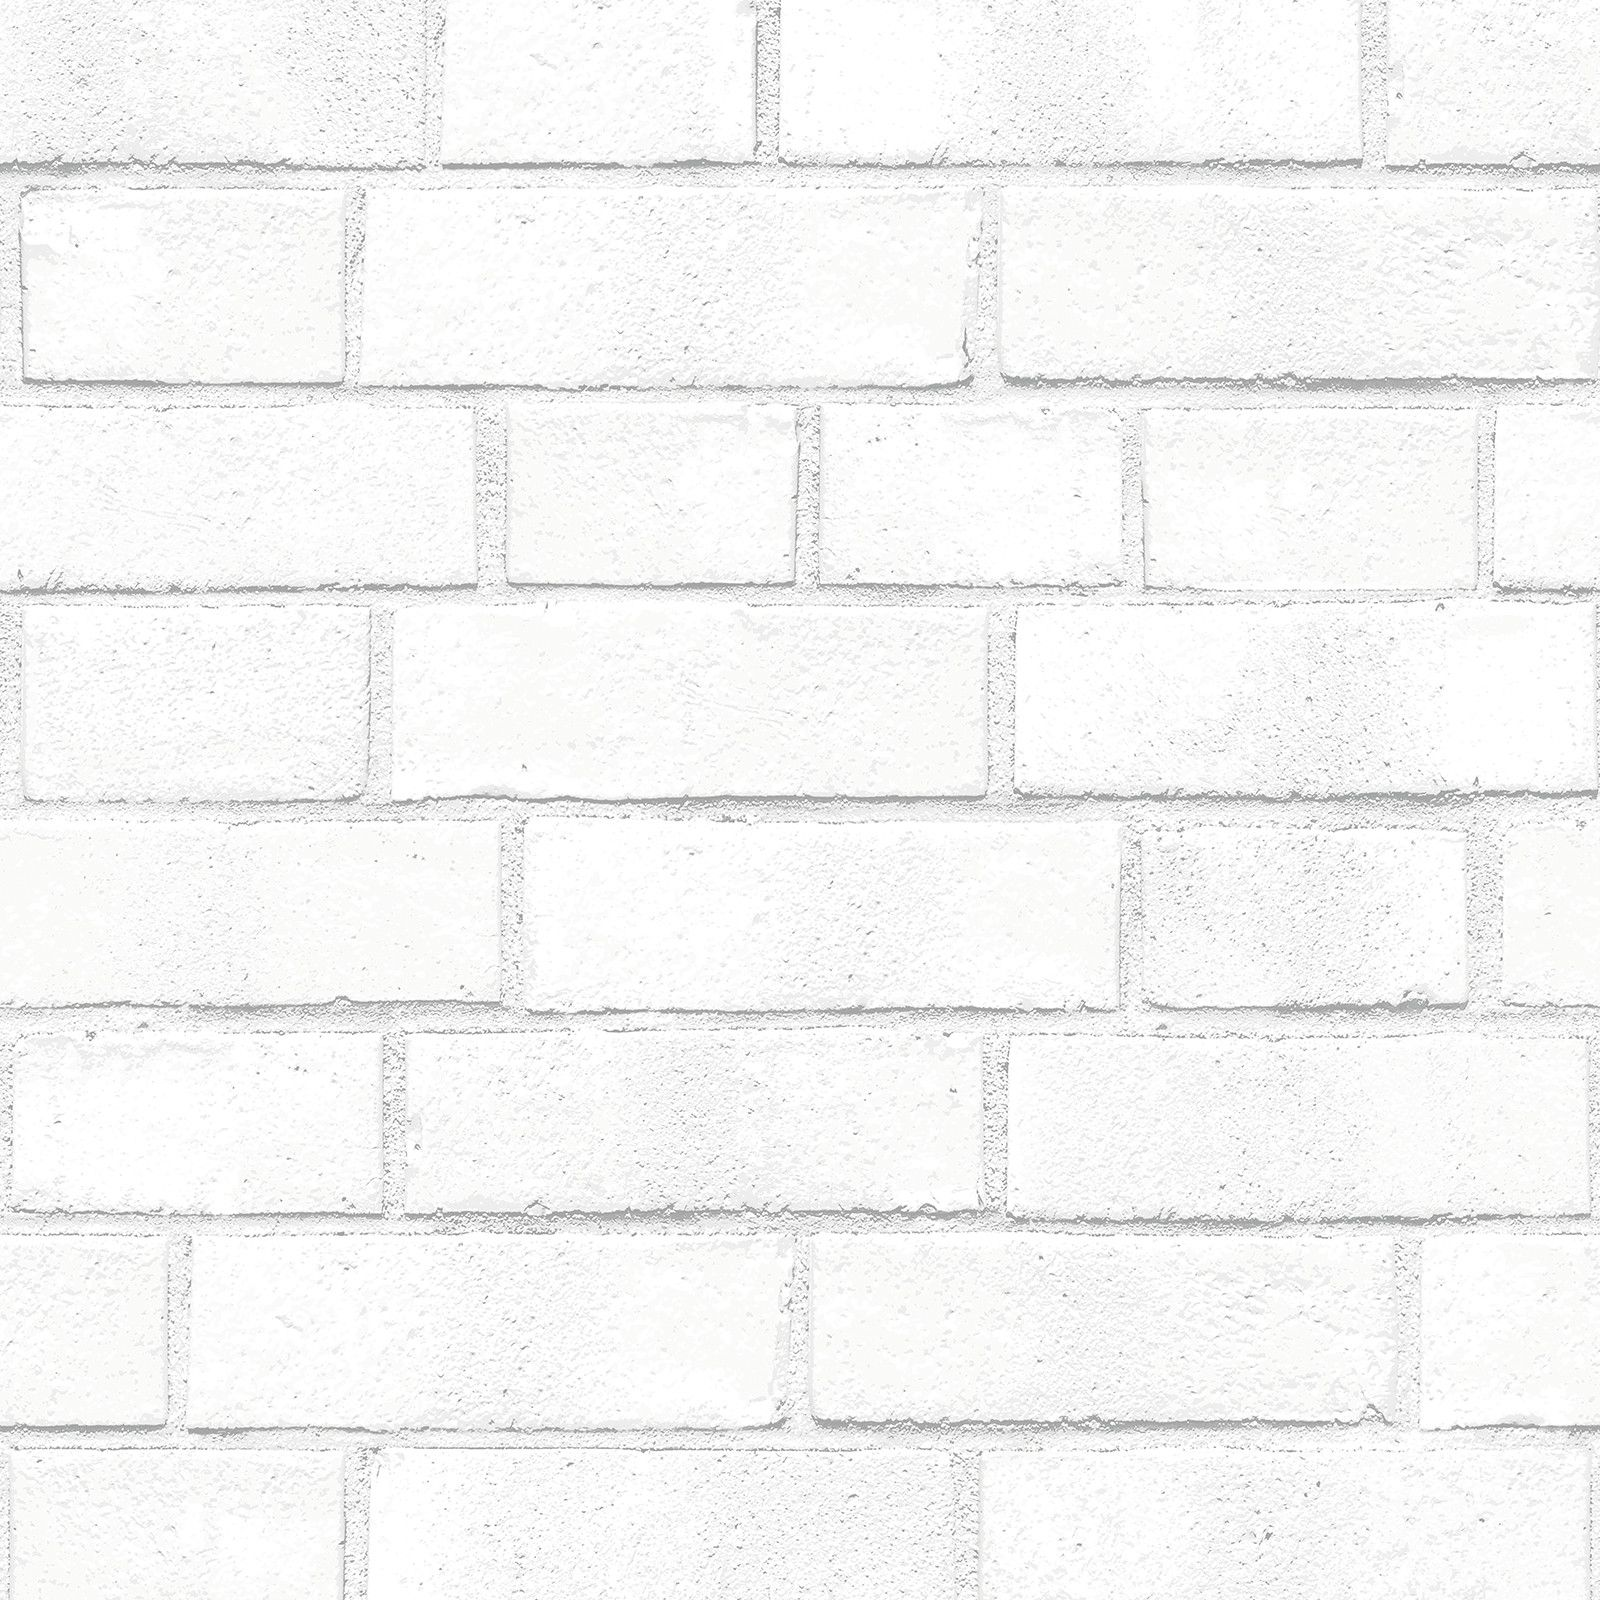 Sample Brick White Textured Self Adhesive Wallpaper design